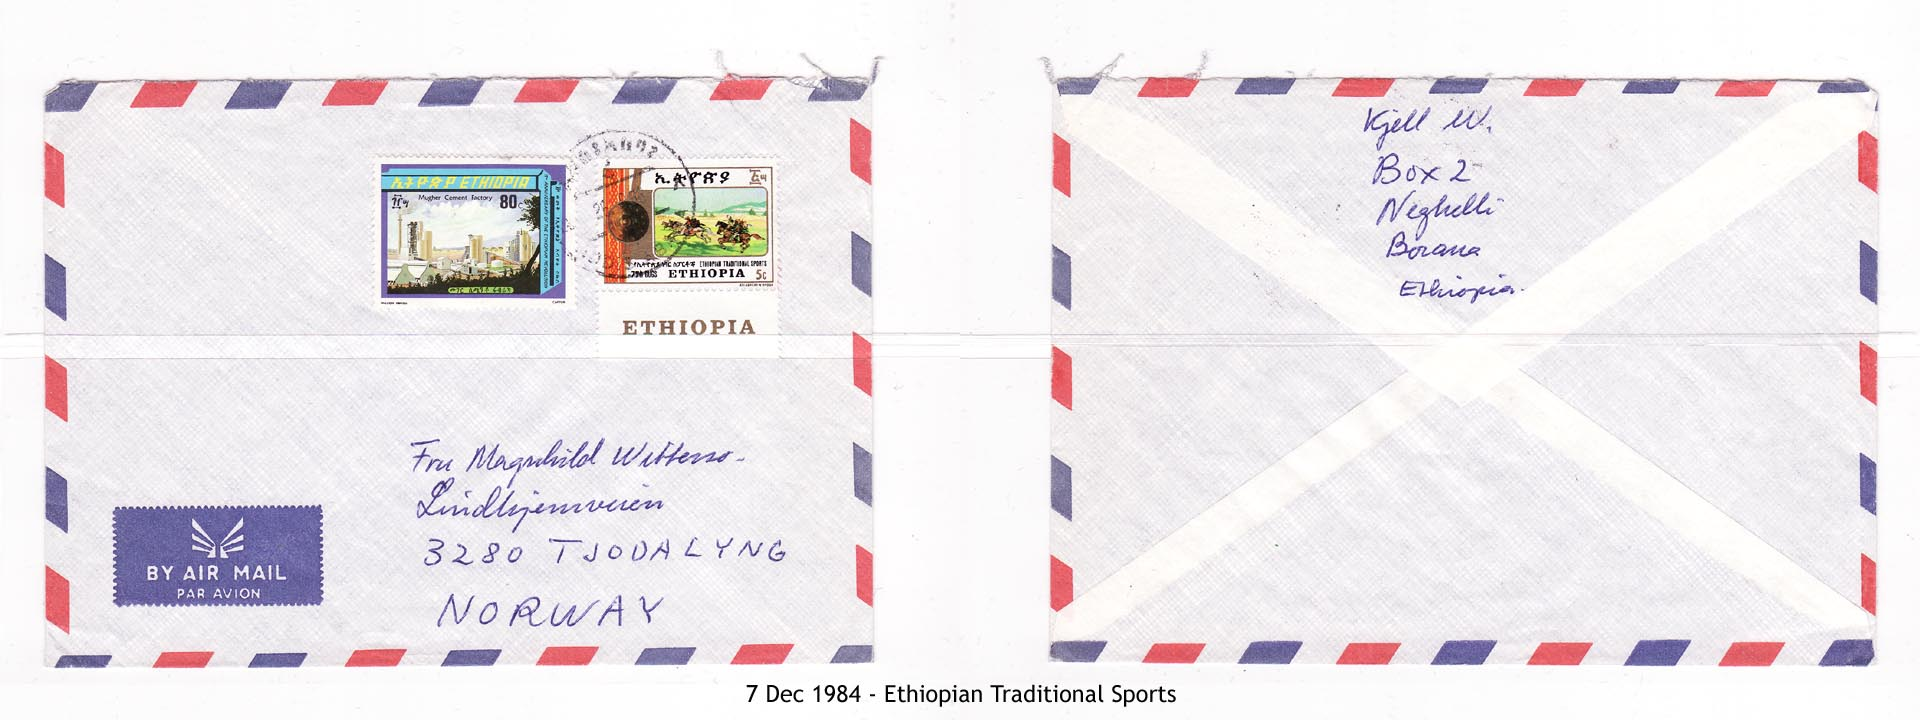 19841207 - Ethiopian Traditional Sports